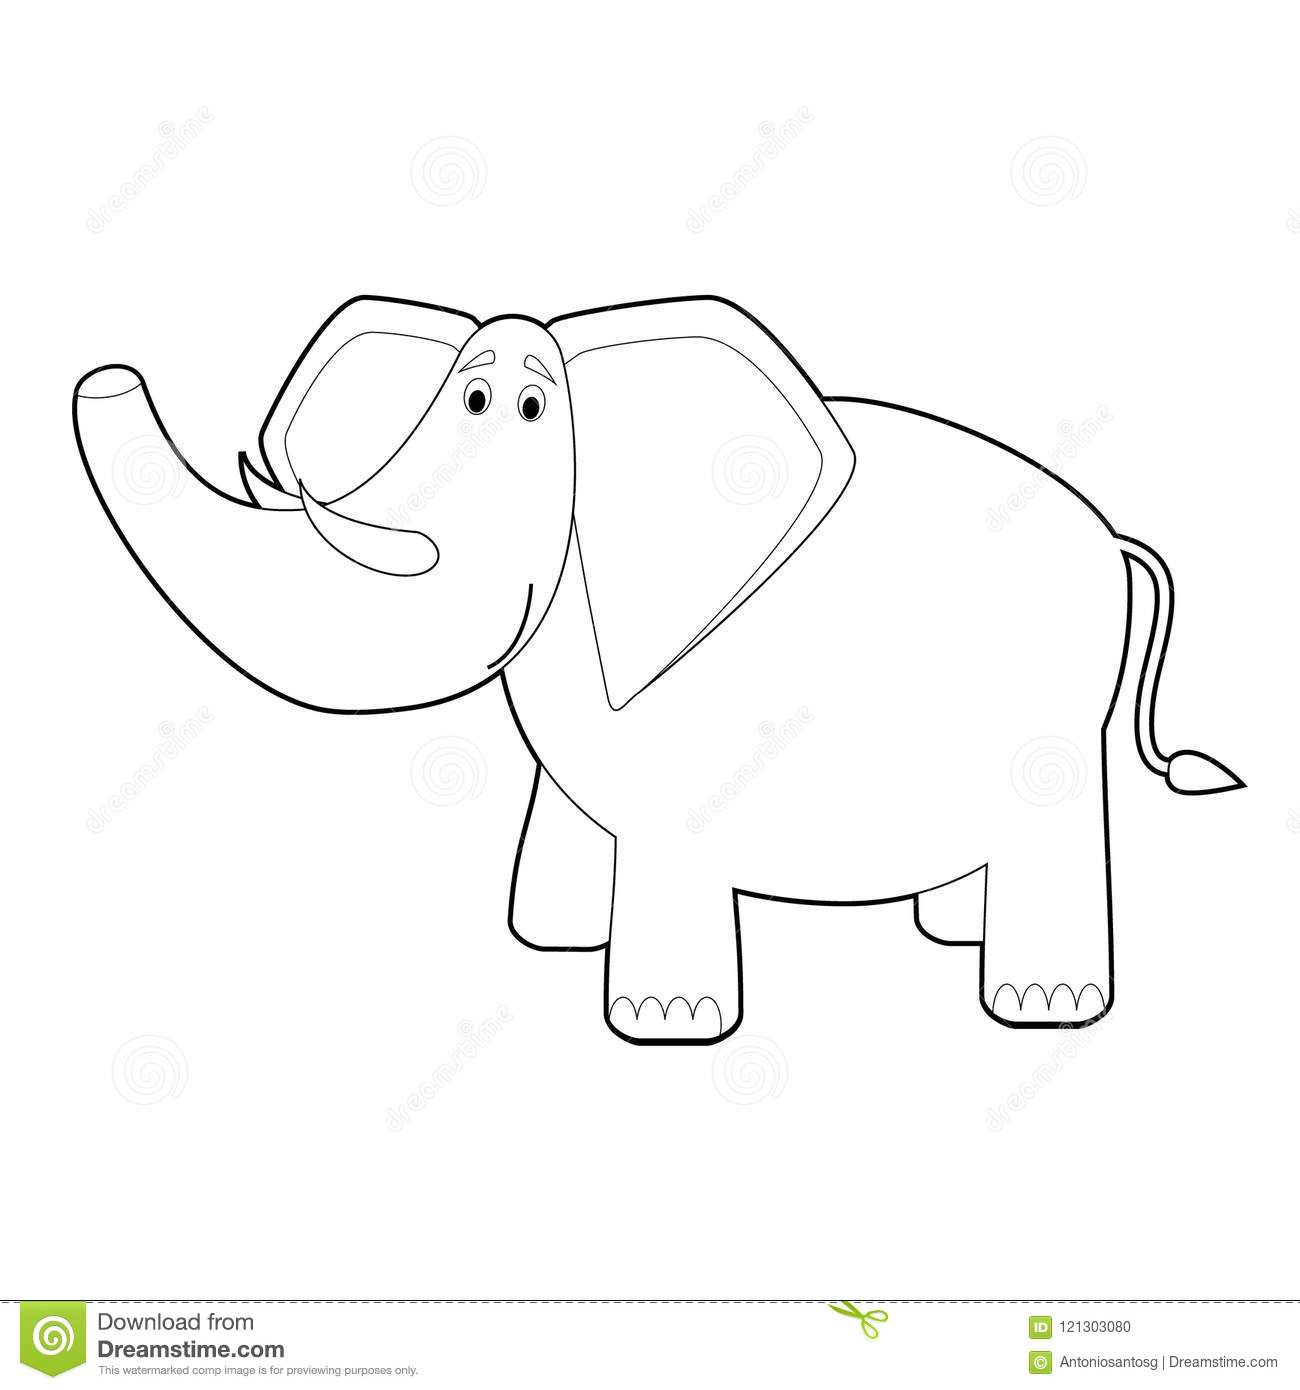 Easy Coloring drawings of animals for little kids  Elephant. Vector  illustration ba4967840